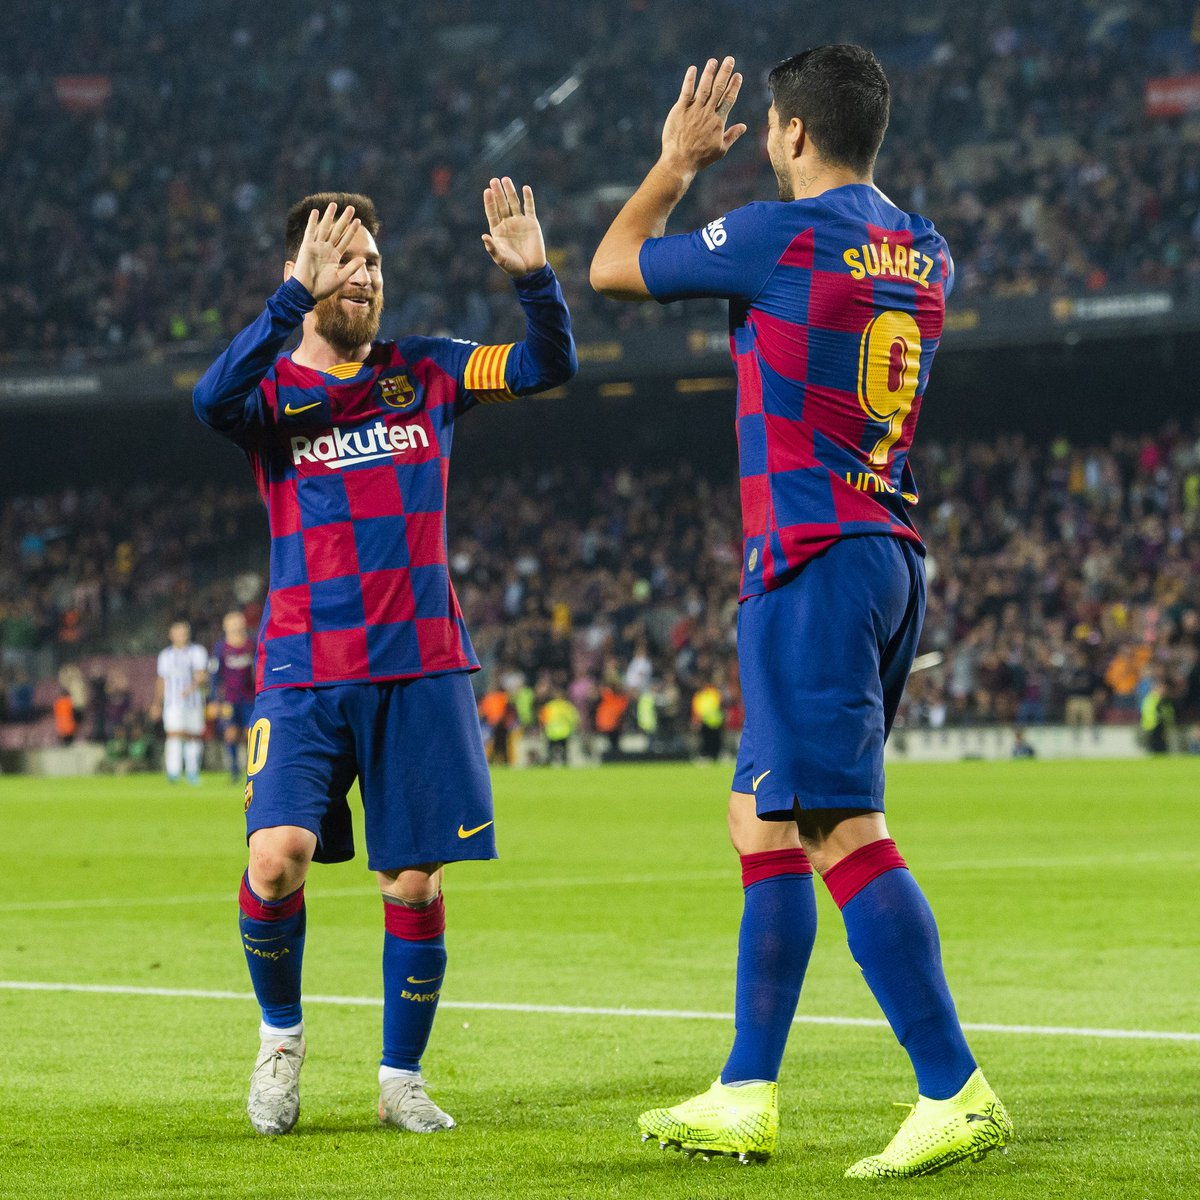 ALL SQUARE   (1 Goal, 1 Assist for Leo  #Messi)   (1 Goal, 1 Assist  for  @LuisSuarez9)